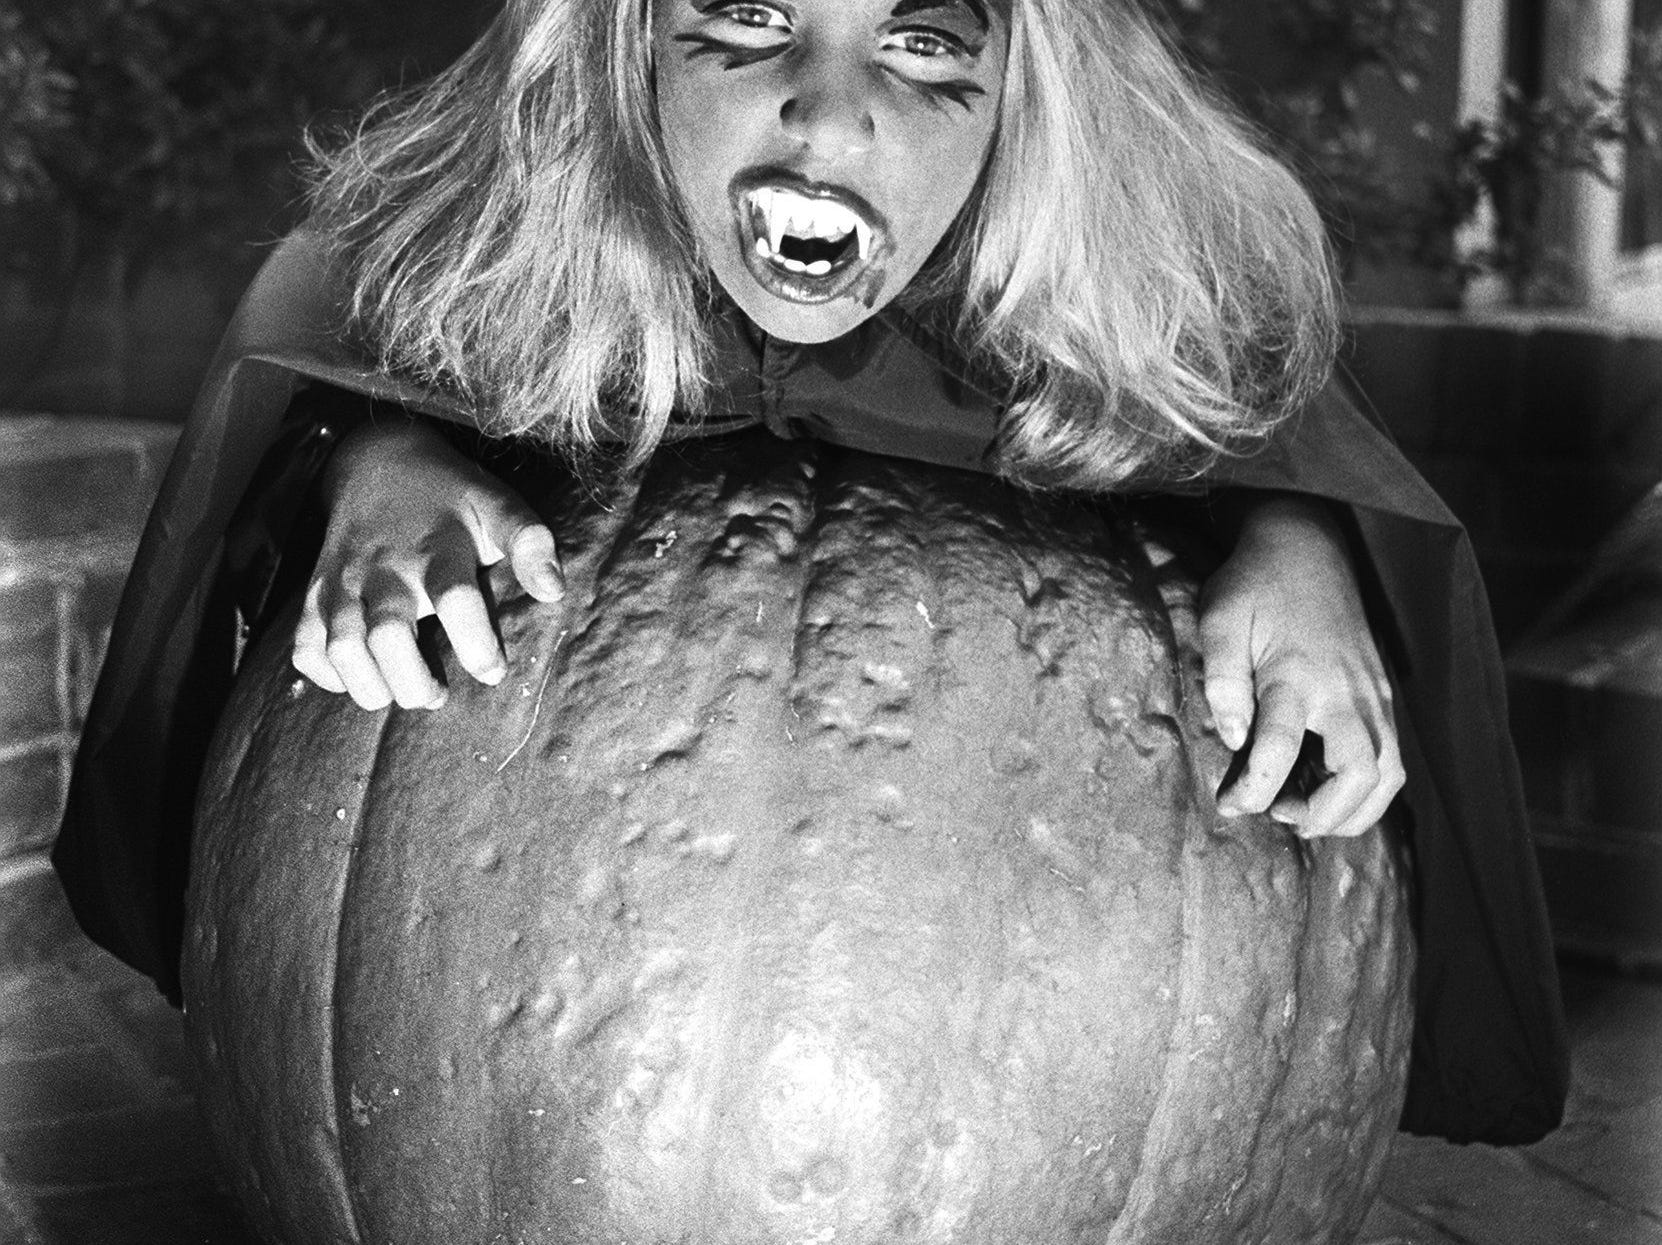 With mom's help, 10-year-old Jynnifer Isbell looks quite bewitching for Halloween in 1982.  Jynnifer is the daughter of Mr. and Mrs. John Isbell.